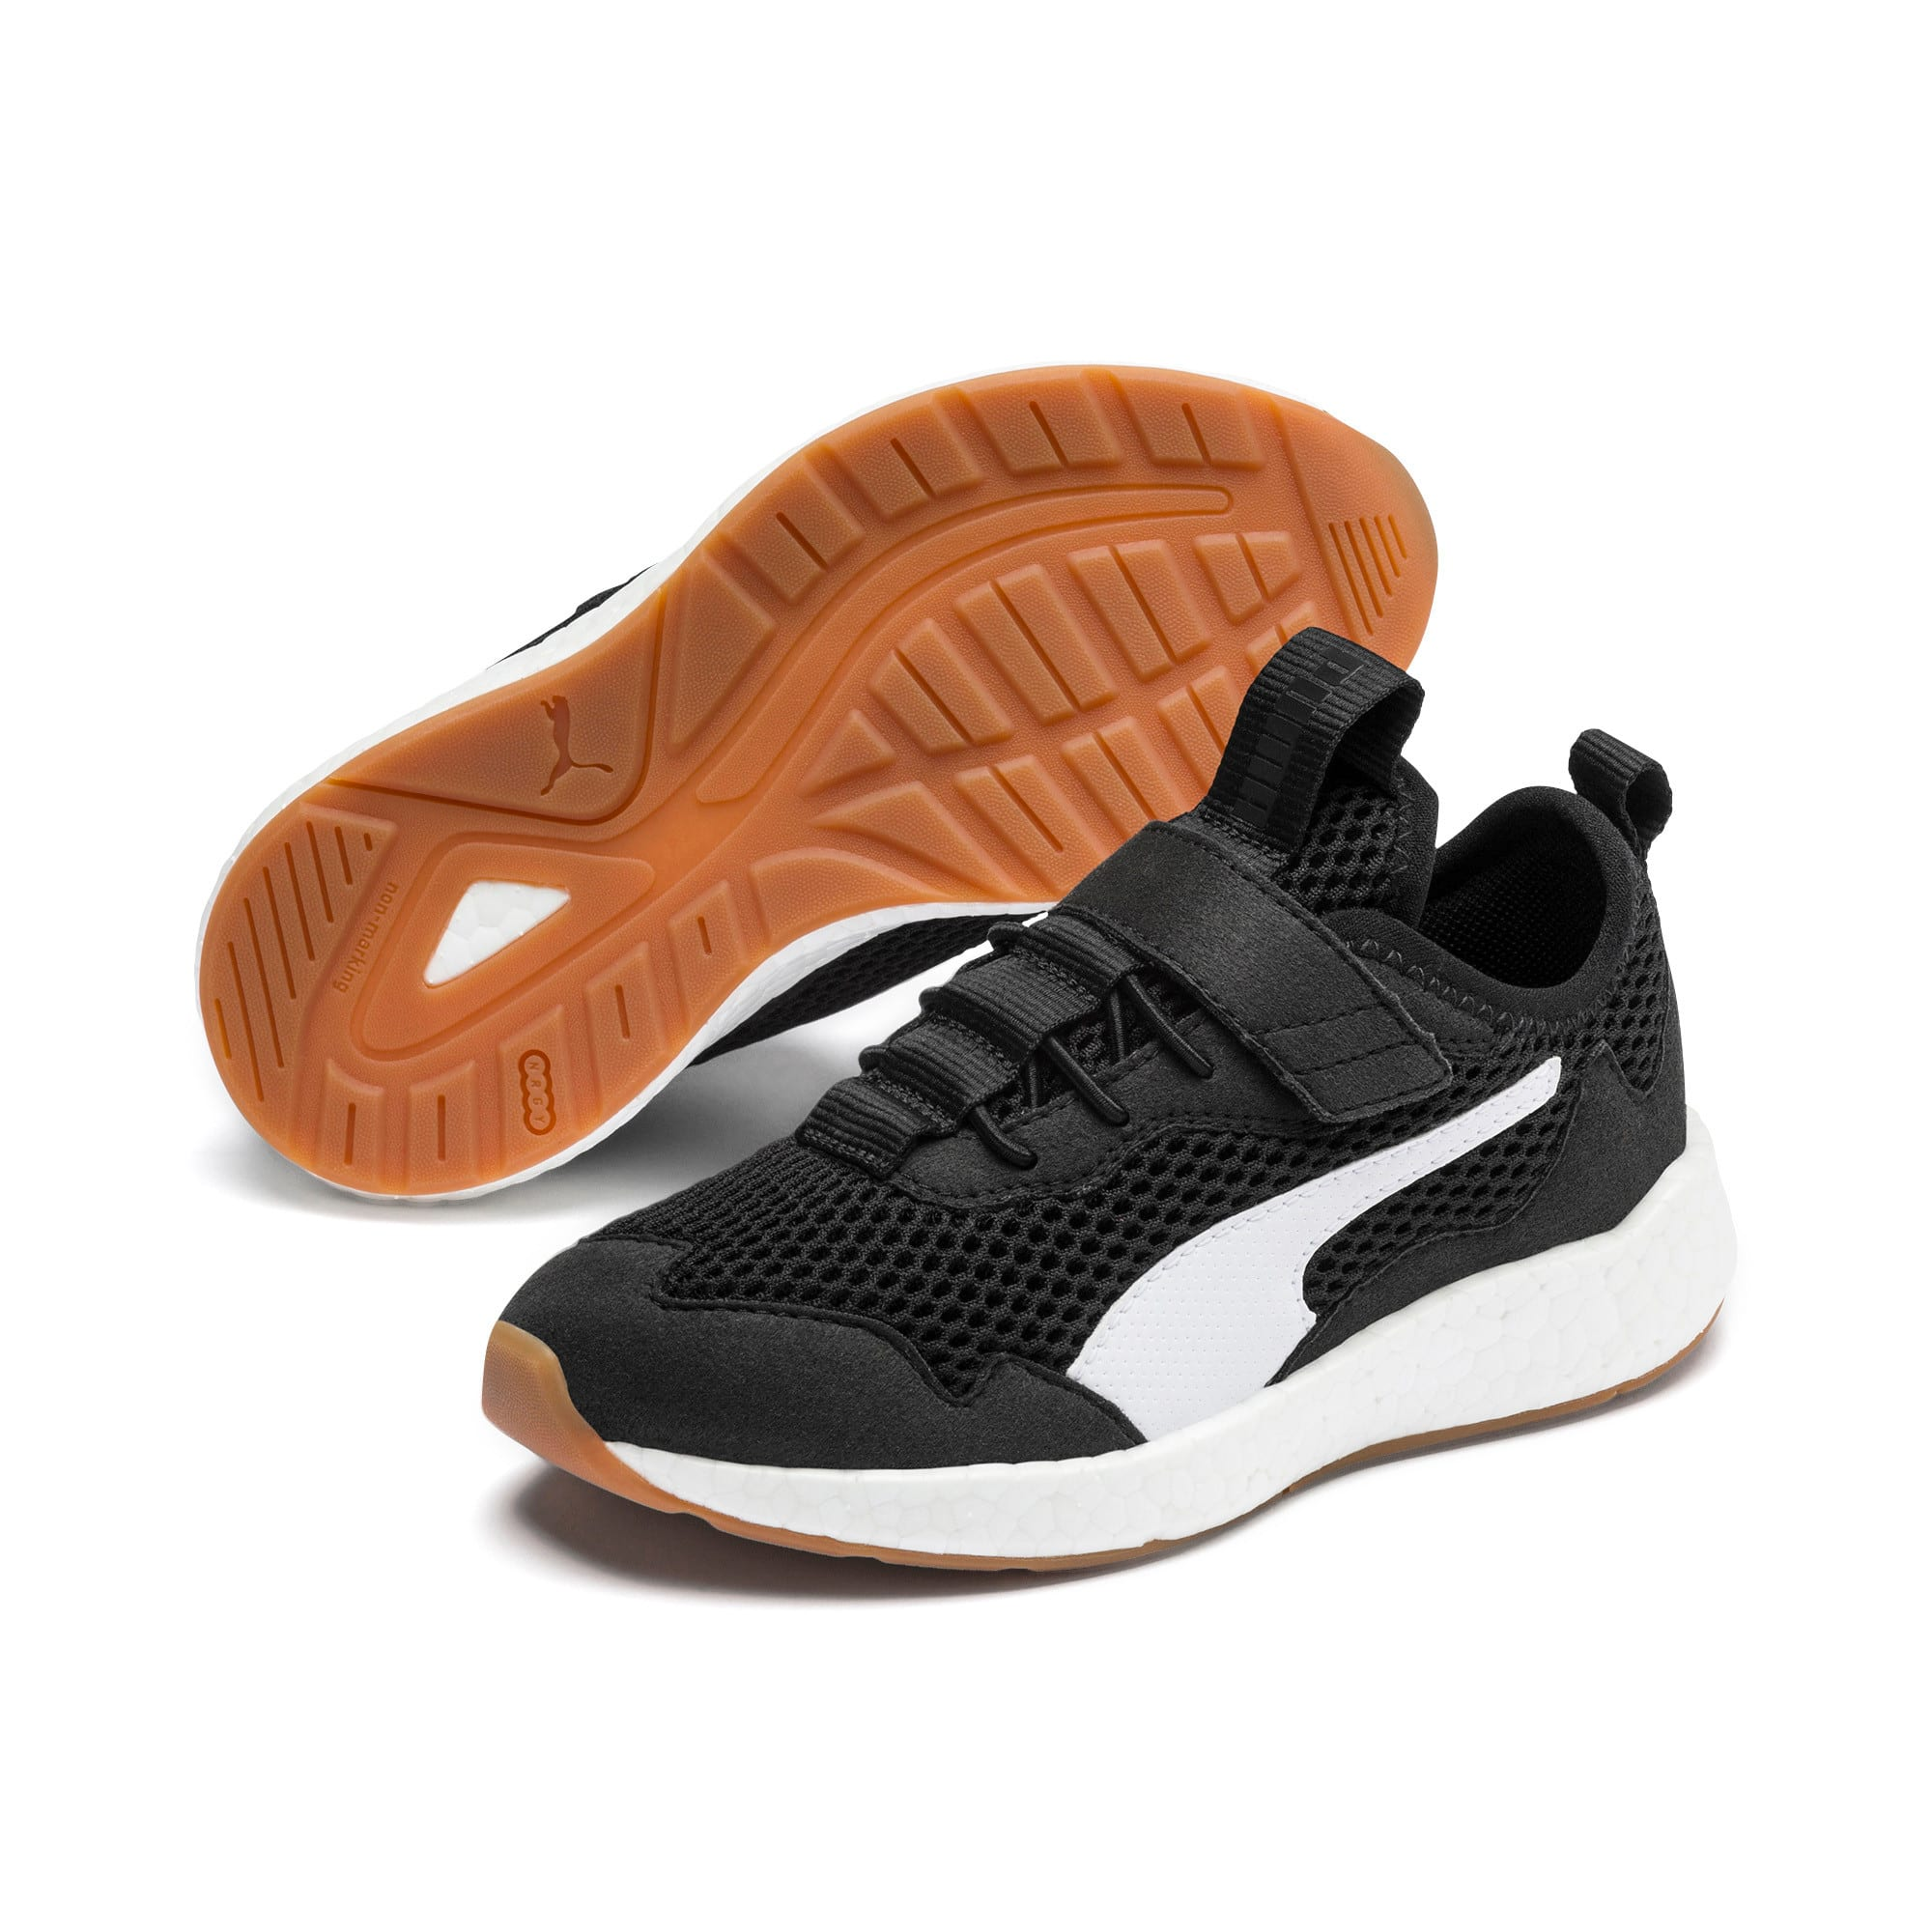 Thumbnail 2 of NRGY Neko Skim AC Kids' Trainers, Puma Black-Puma White, medium